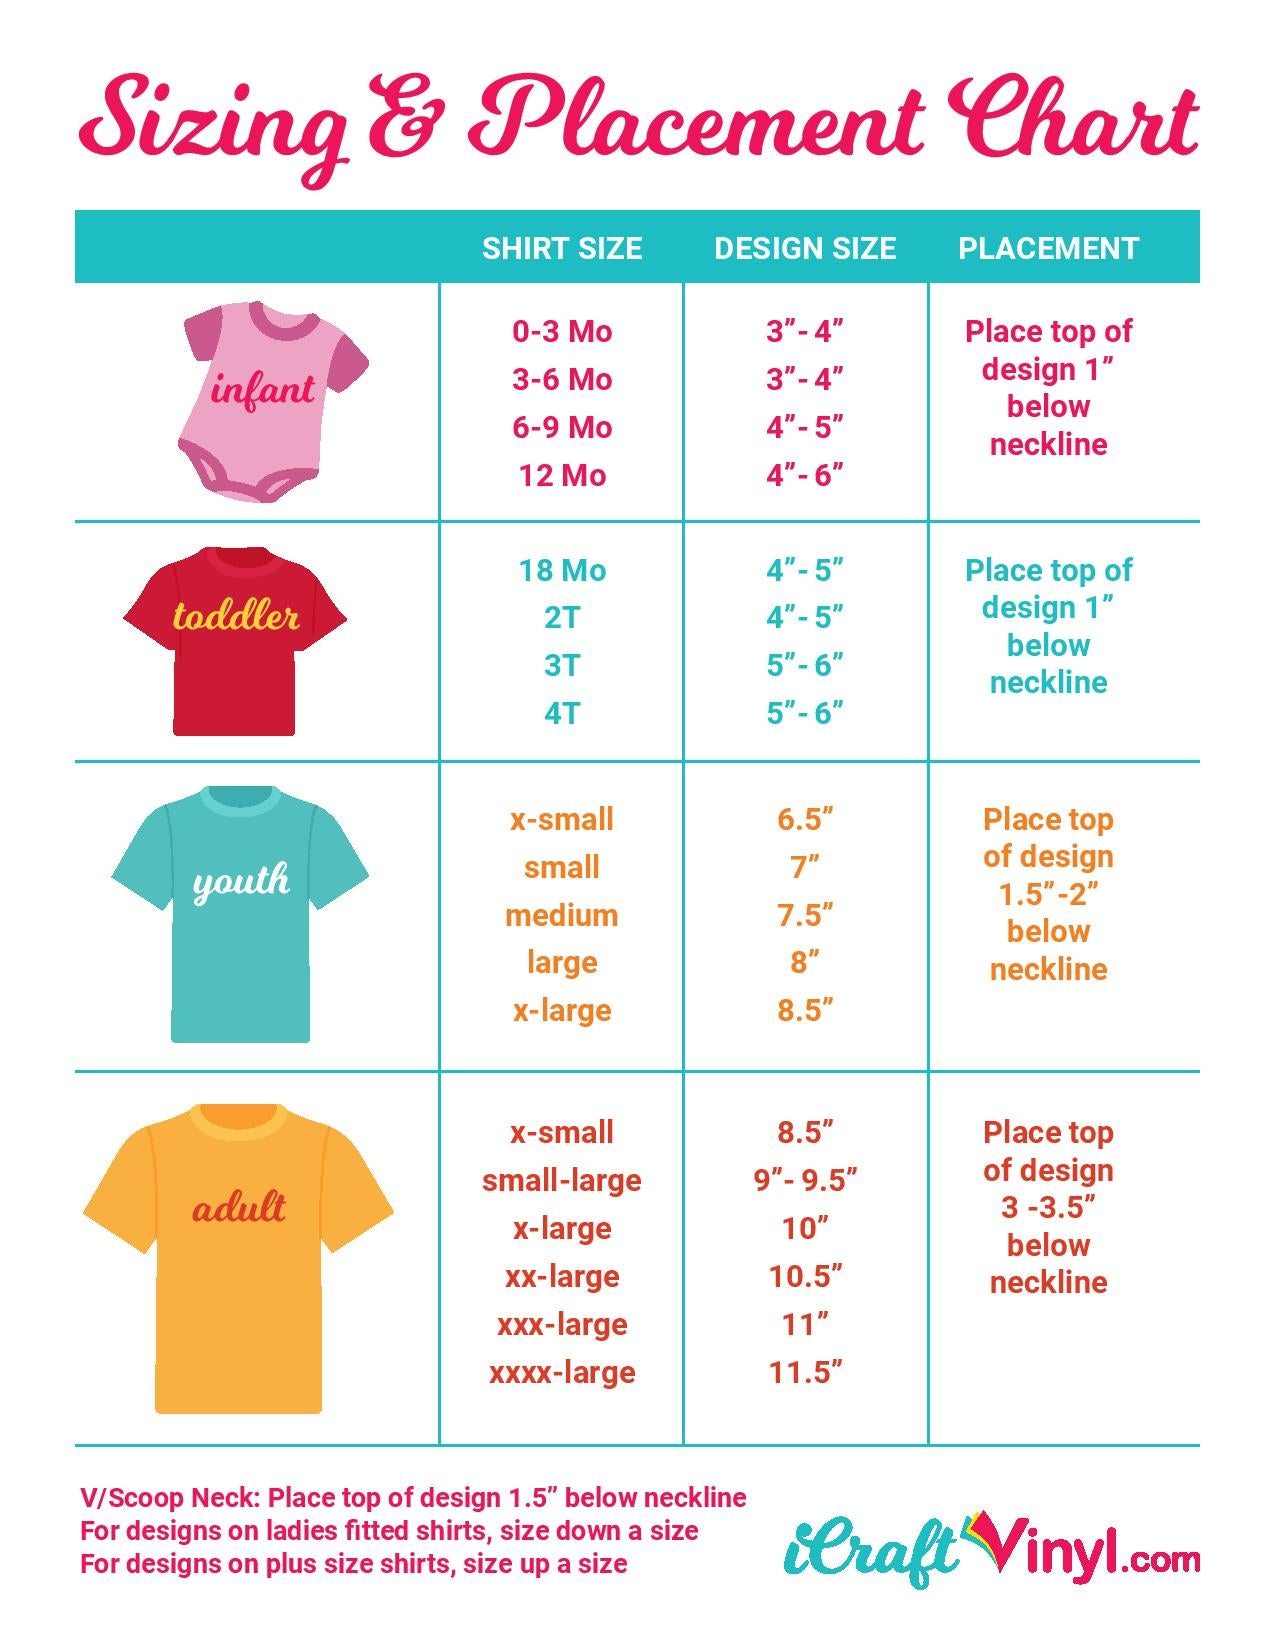 HTV sizing and placement chart